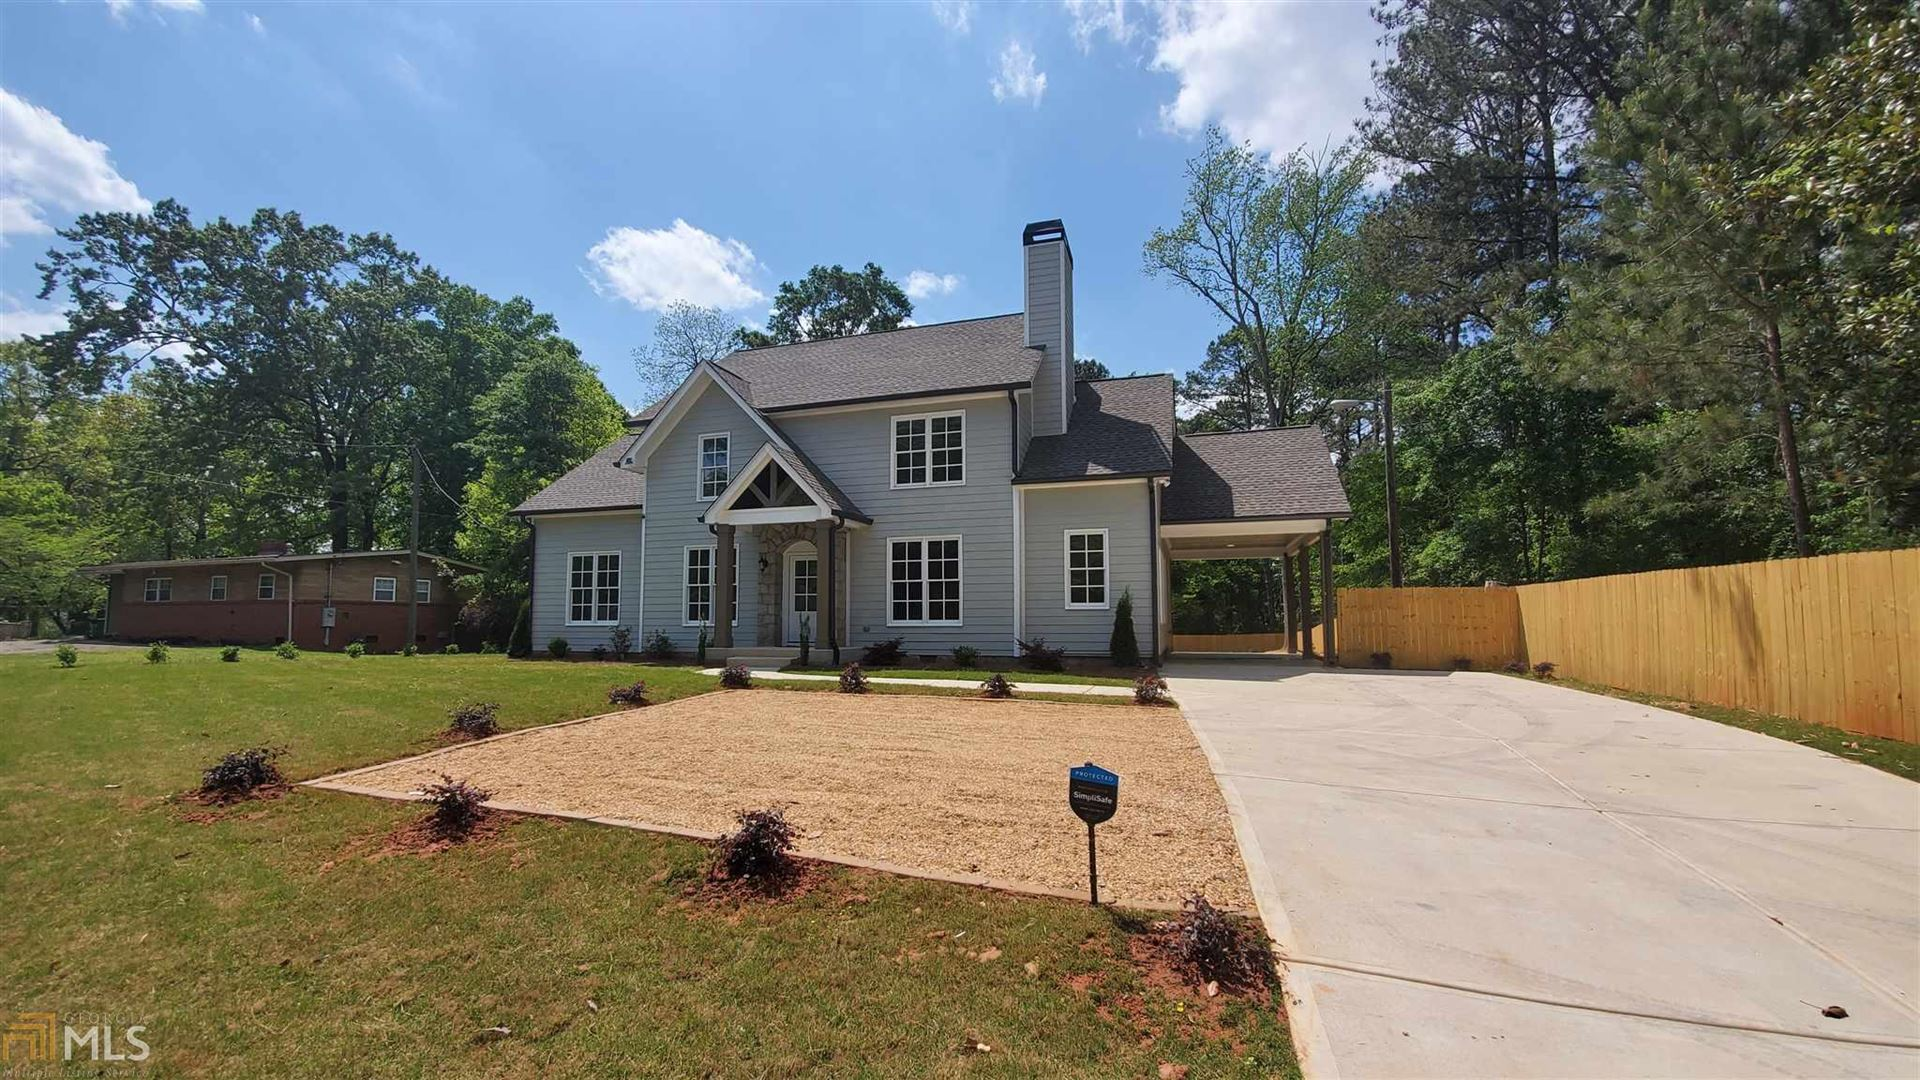 1907 Austin Dr, Decatur, GA 30032 - MLS#: 8914905